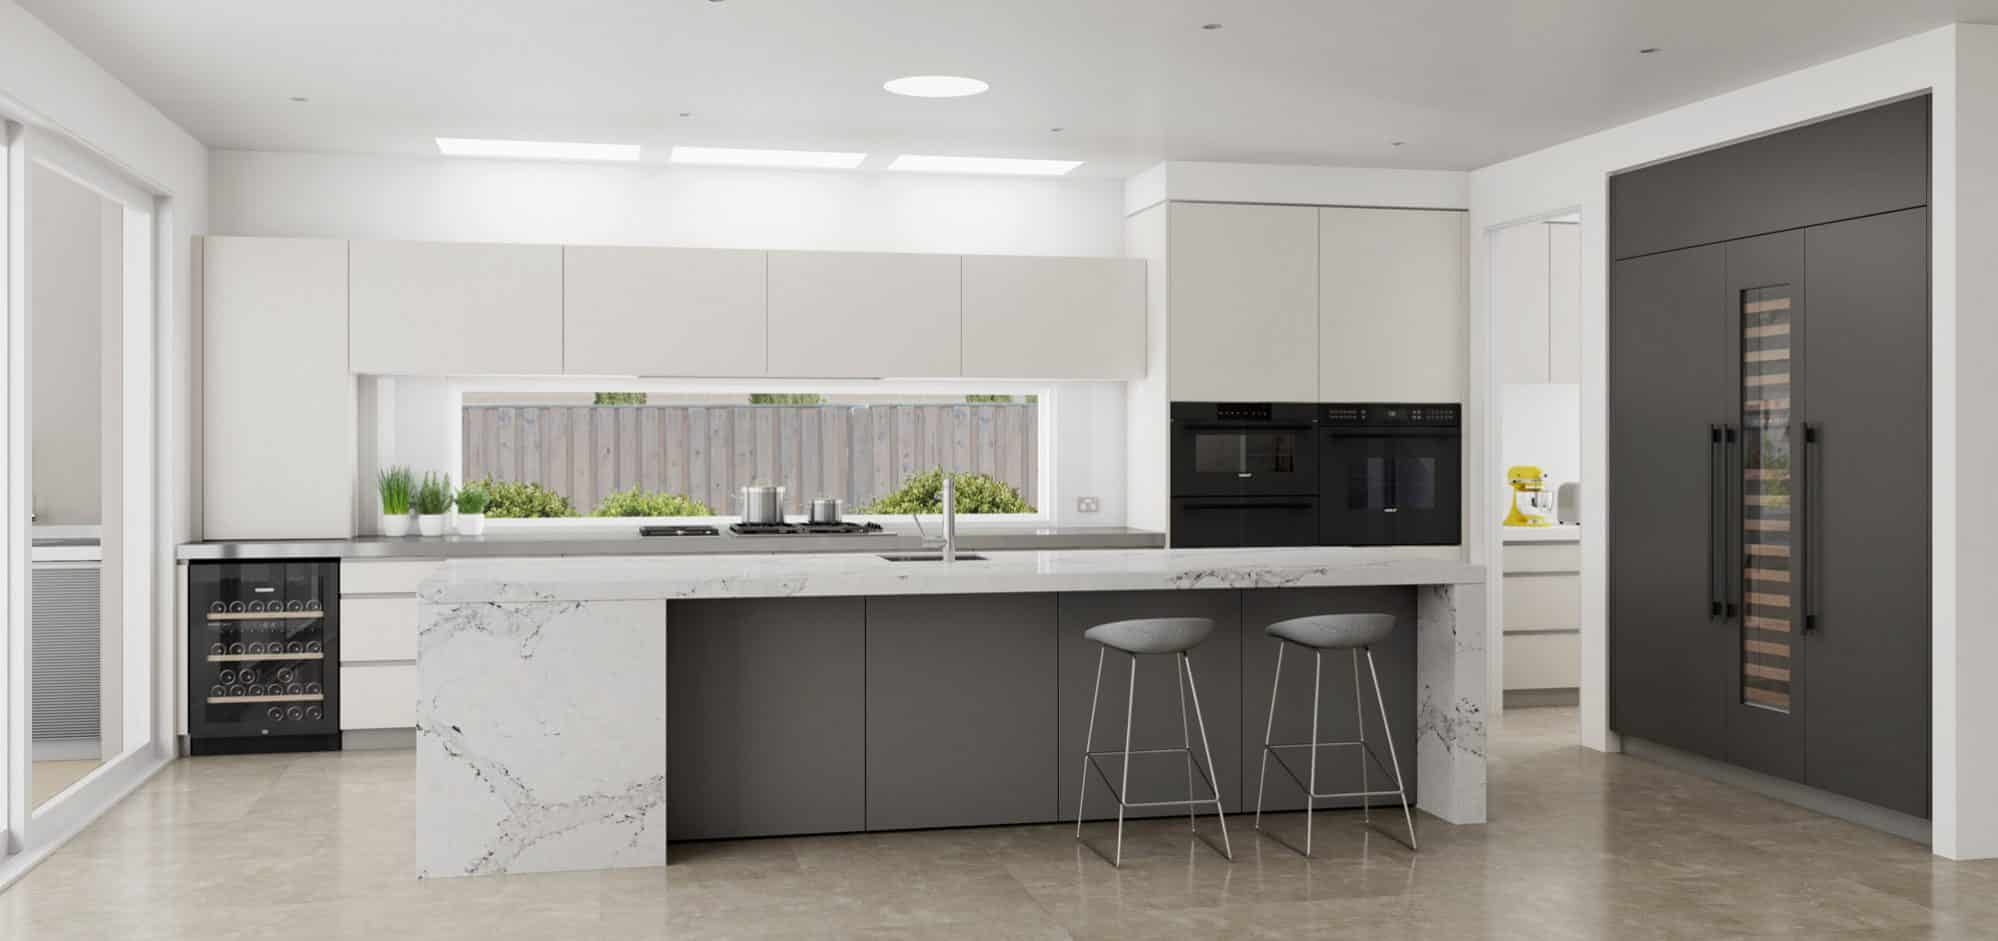 Large light and charcoal modern kitchen with scullery